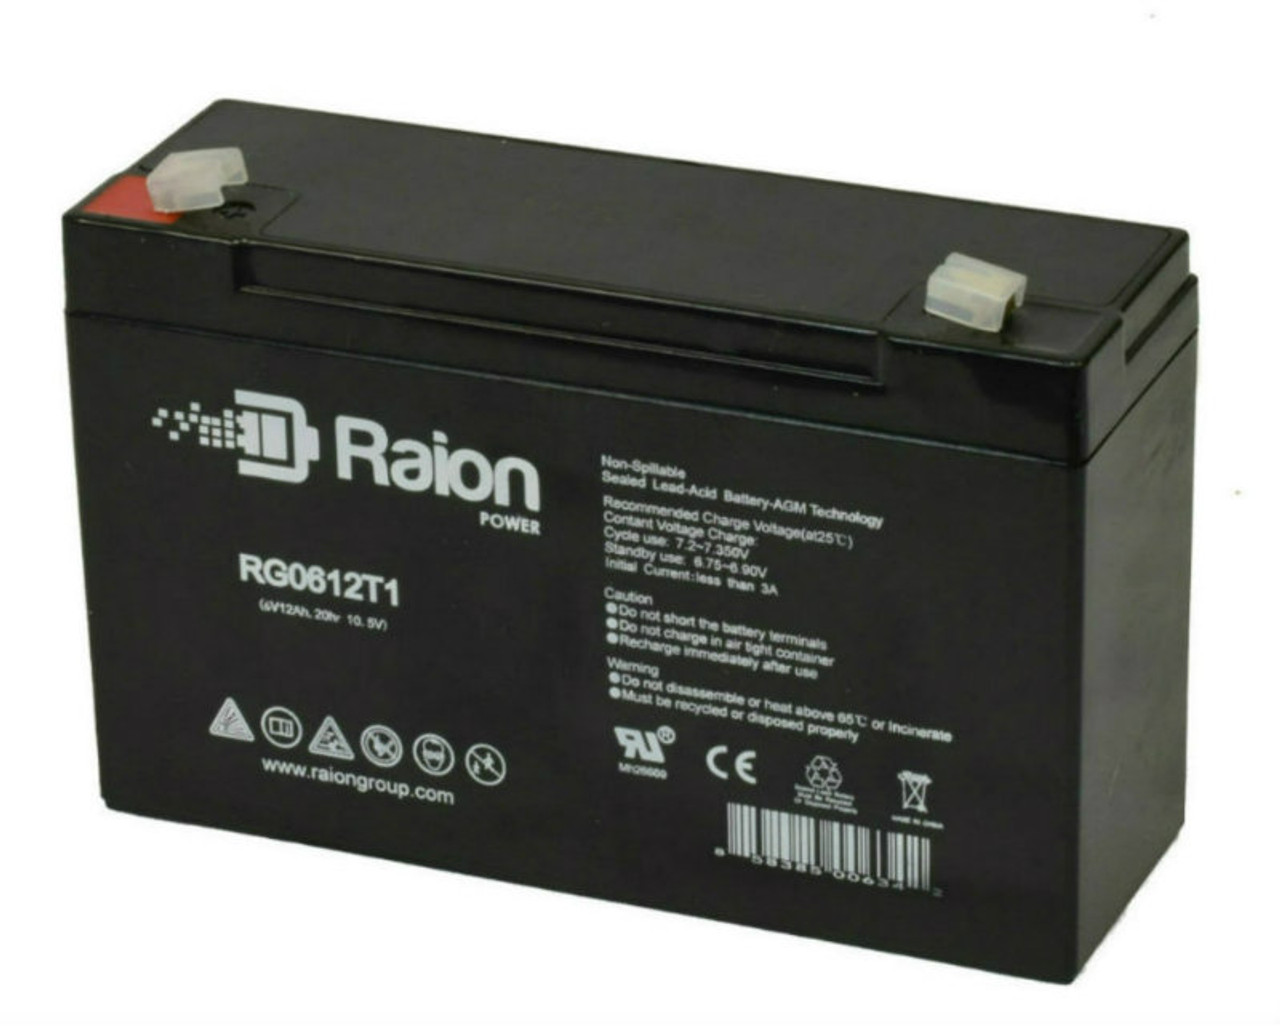 Raion Power RG06120T1 Replacement Battery Pack for Light Alarms PS10MP emergency light